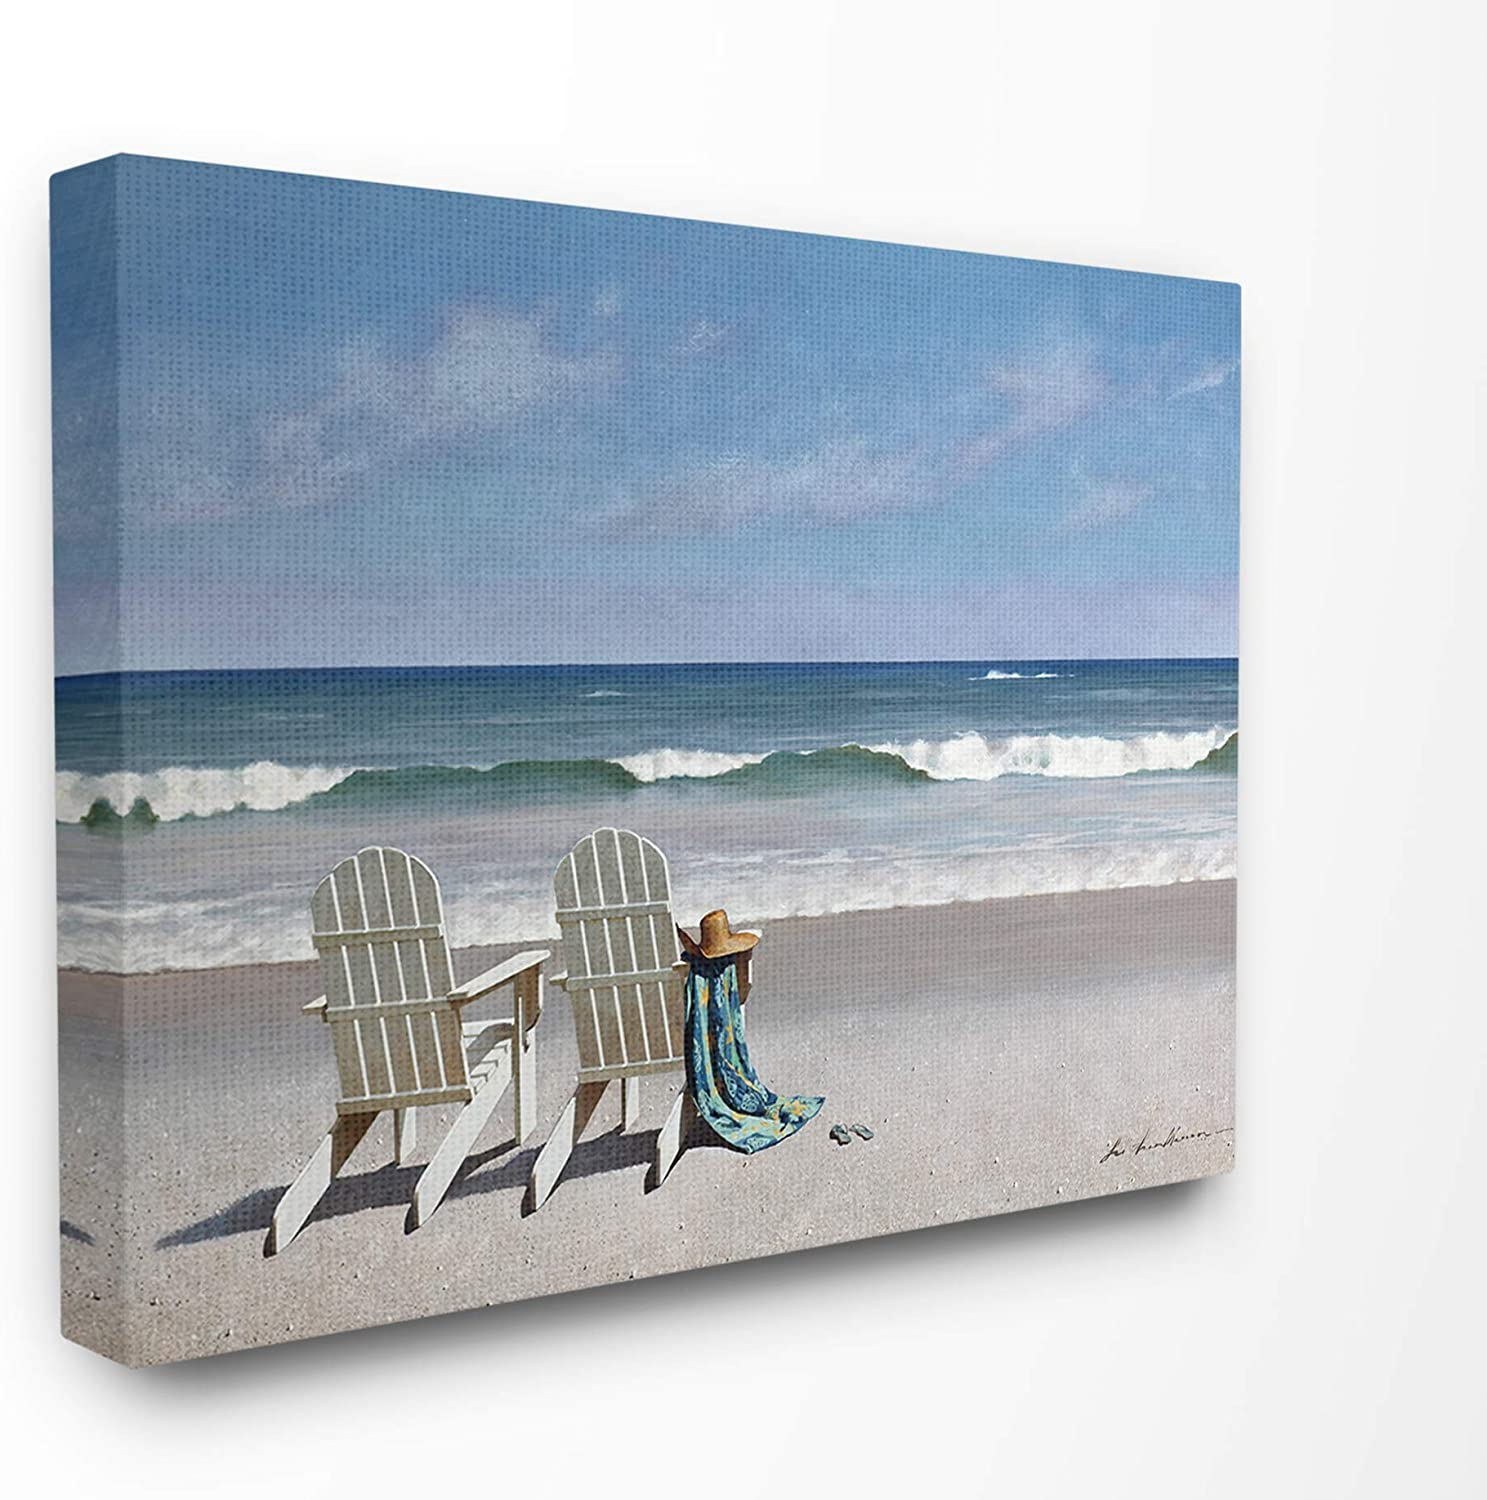 The Stupell Home Decor Two White Adirondack Chairs On The Beach Stretched Canvas Wall Art 24 X 30 Multi Color Posters Prints